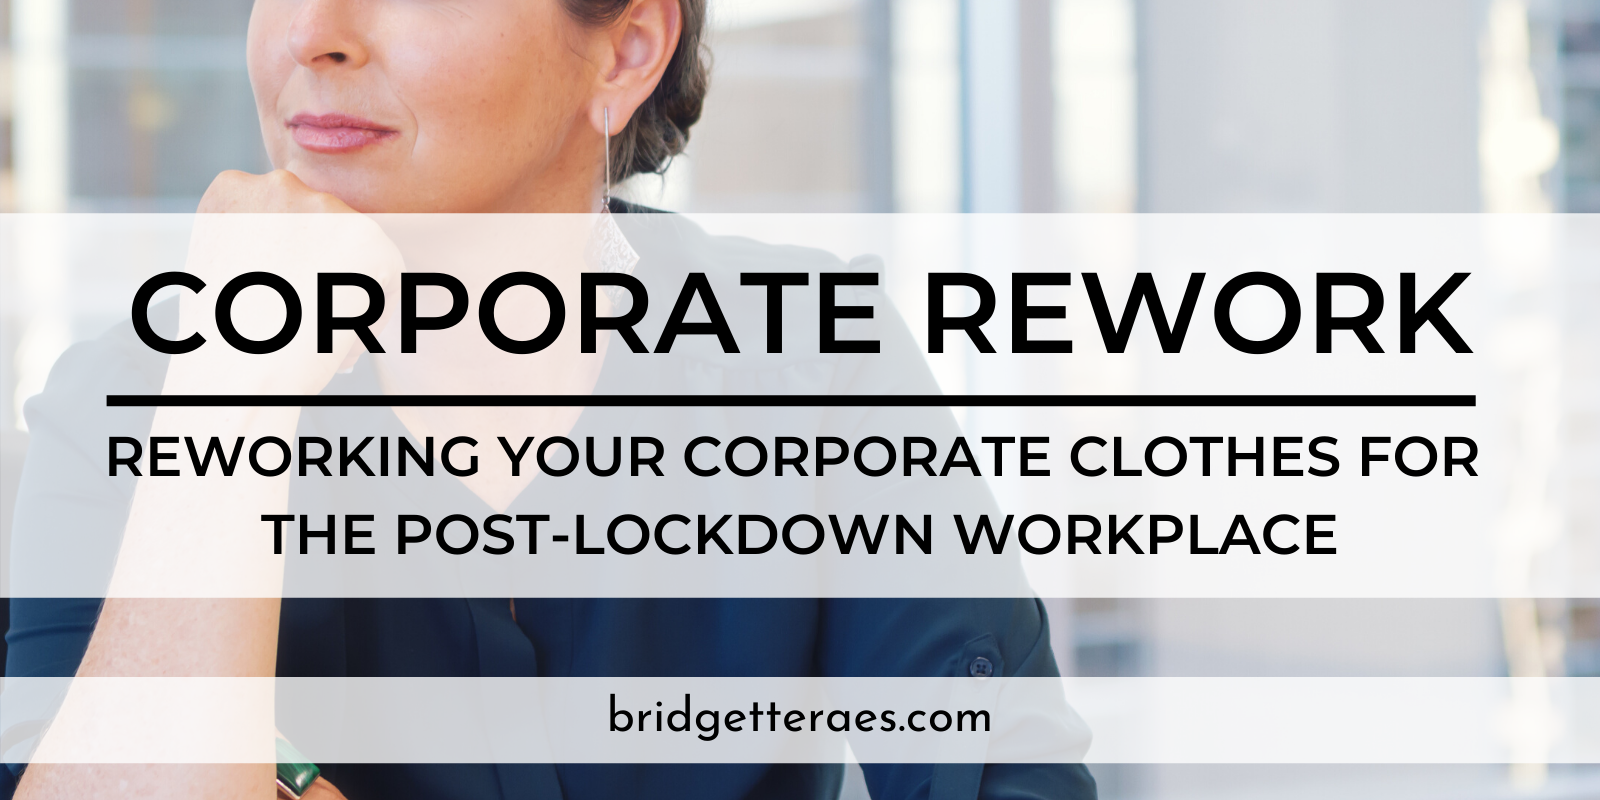 Corporate Rework: Reworking Your Corporate Clothes for a Post-Lockdown Workplace